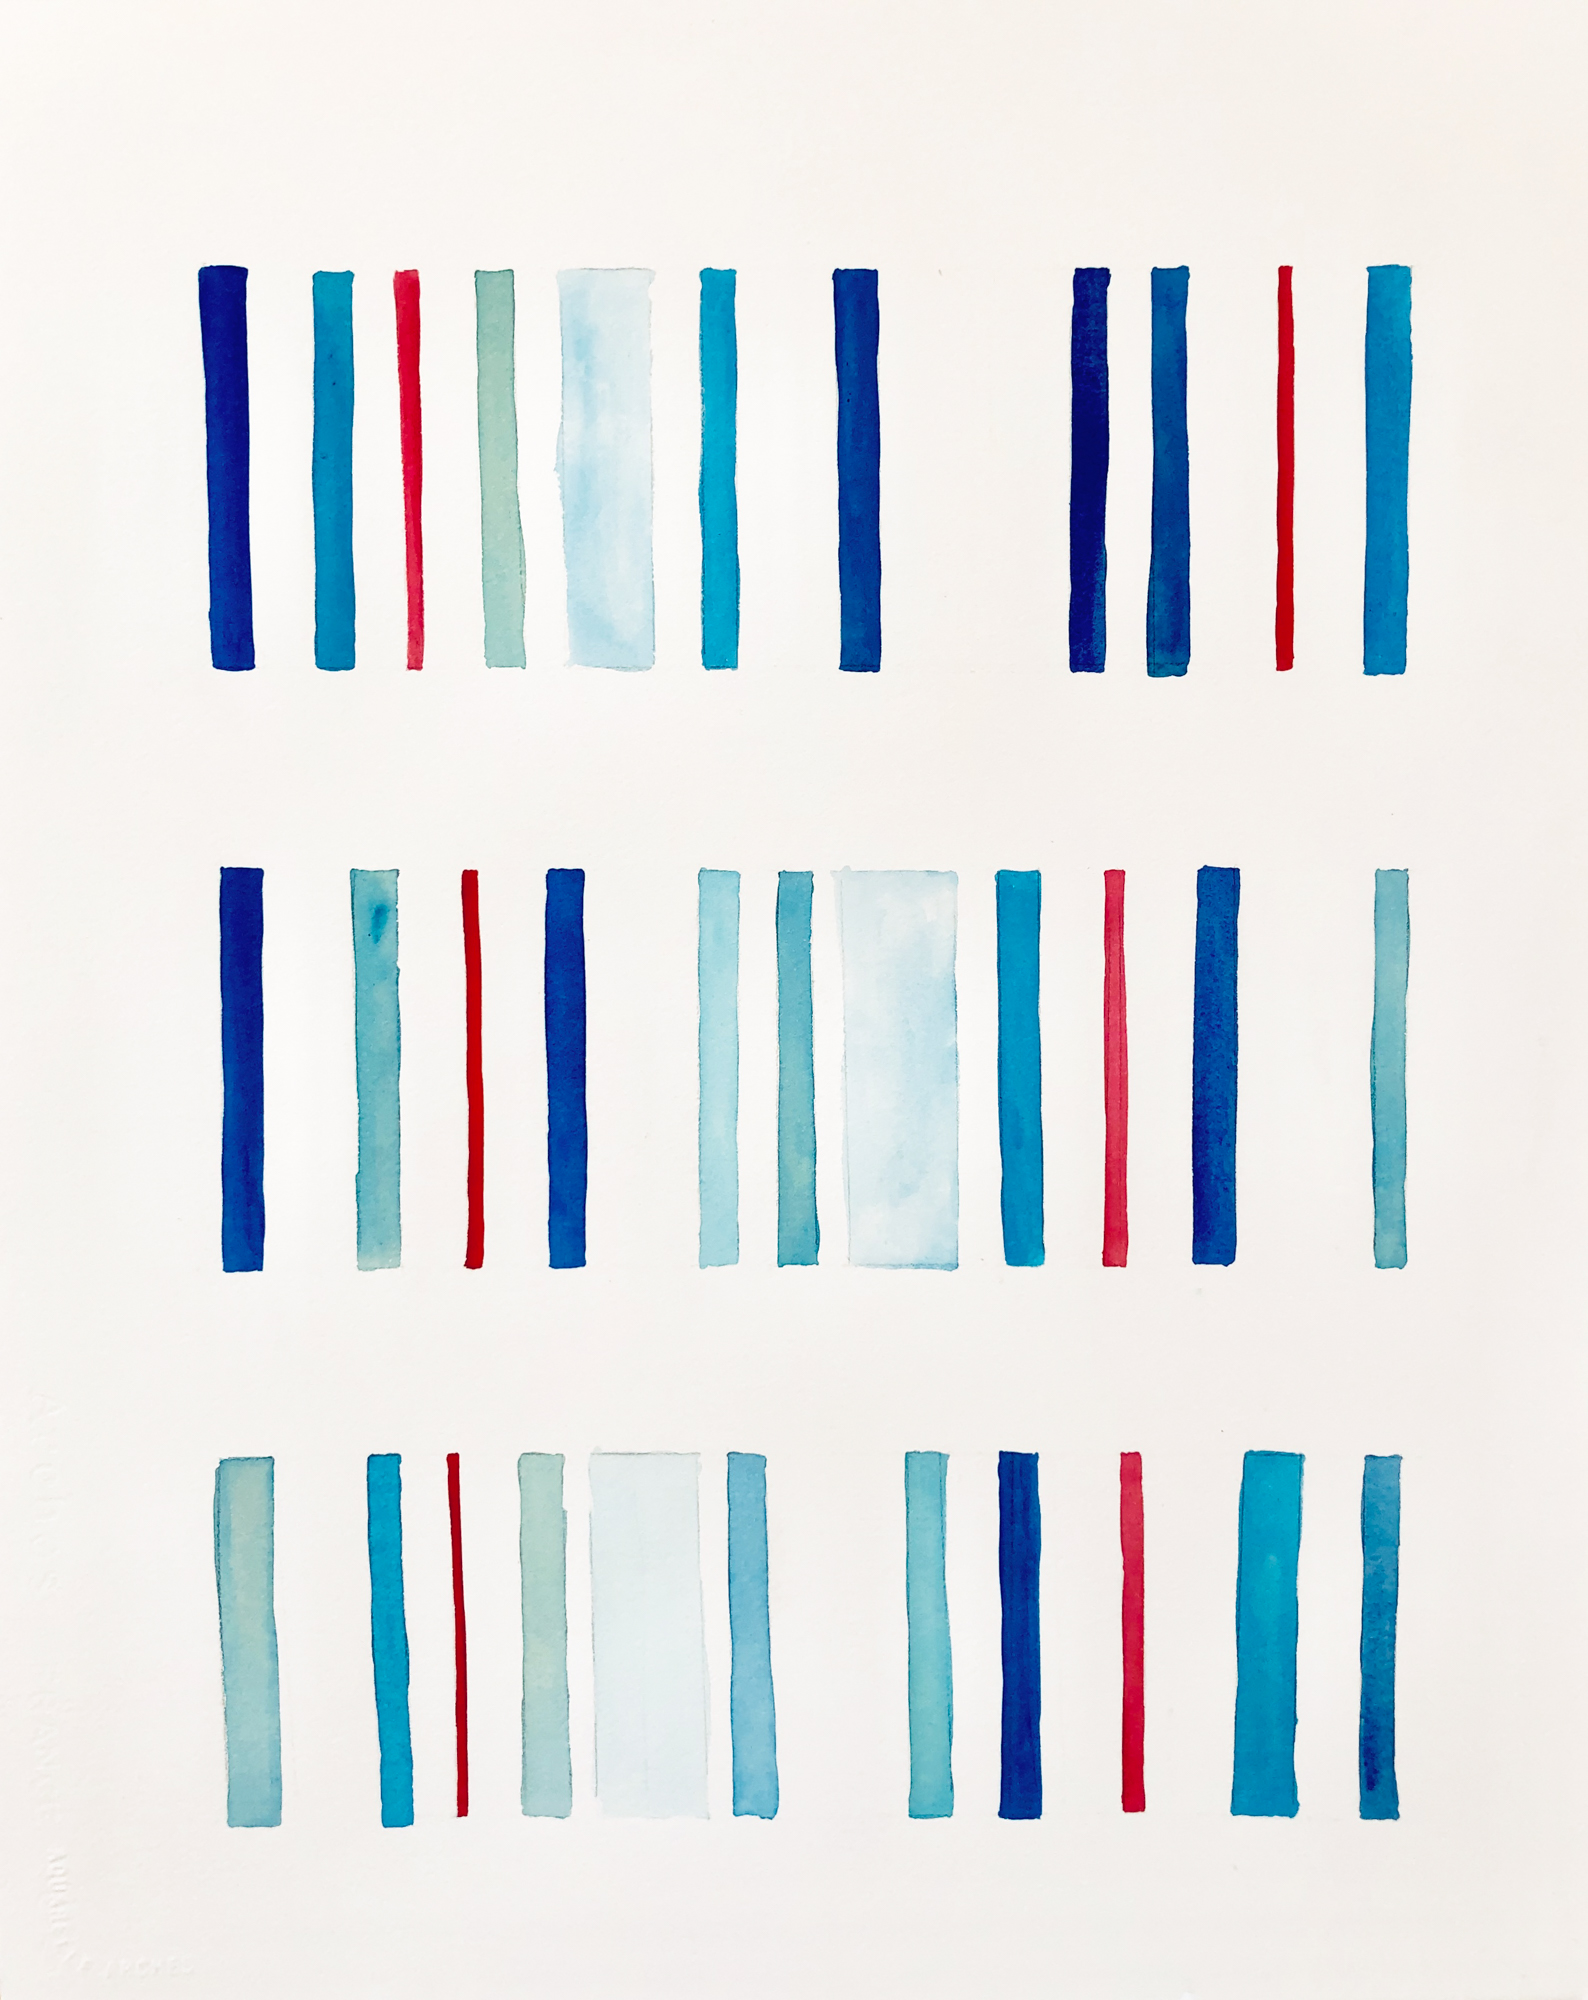 Blue Red Lines, 2019, mixed media on paper, 16 x 20 in, $3,000